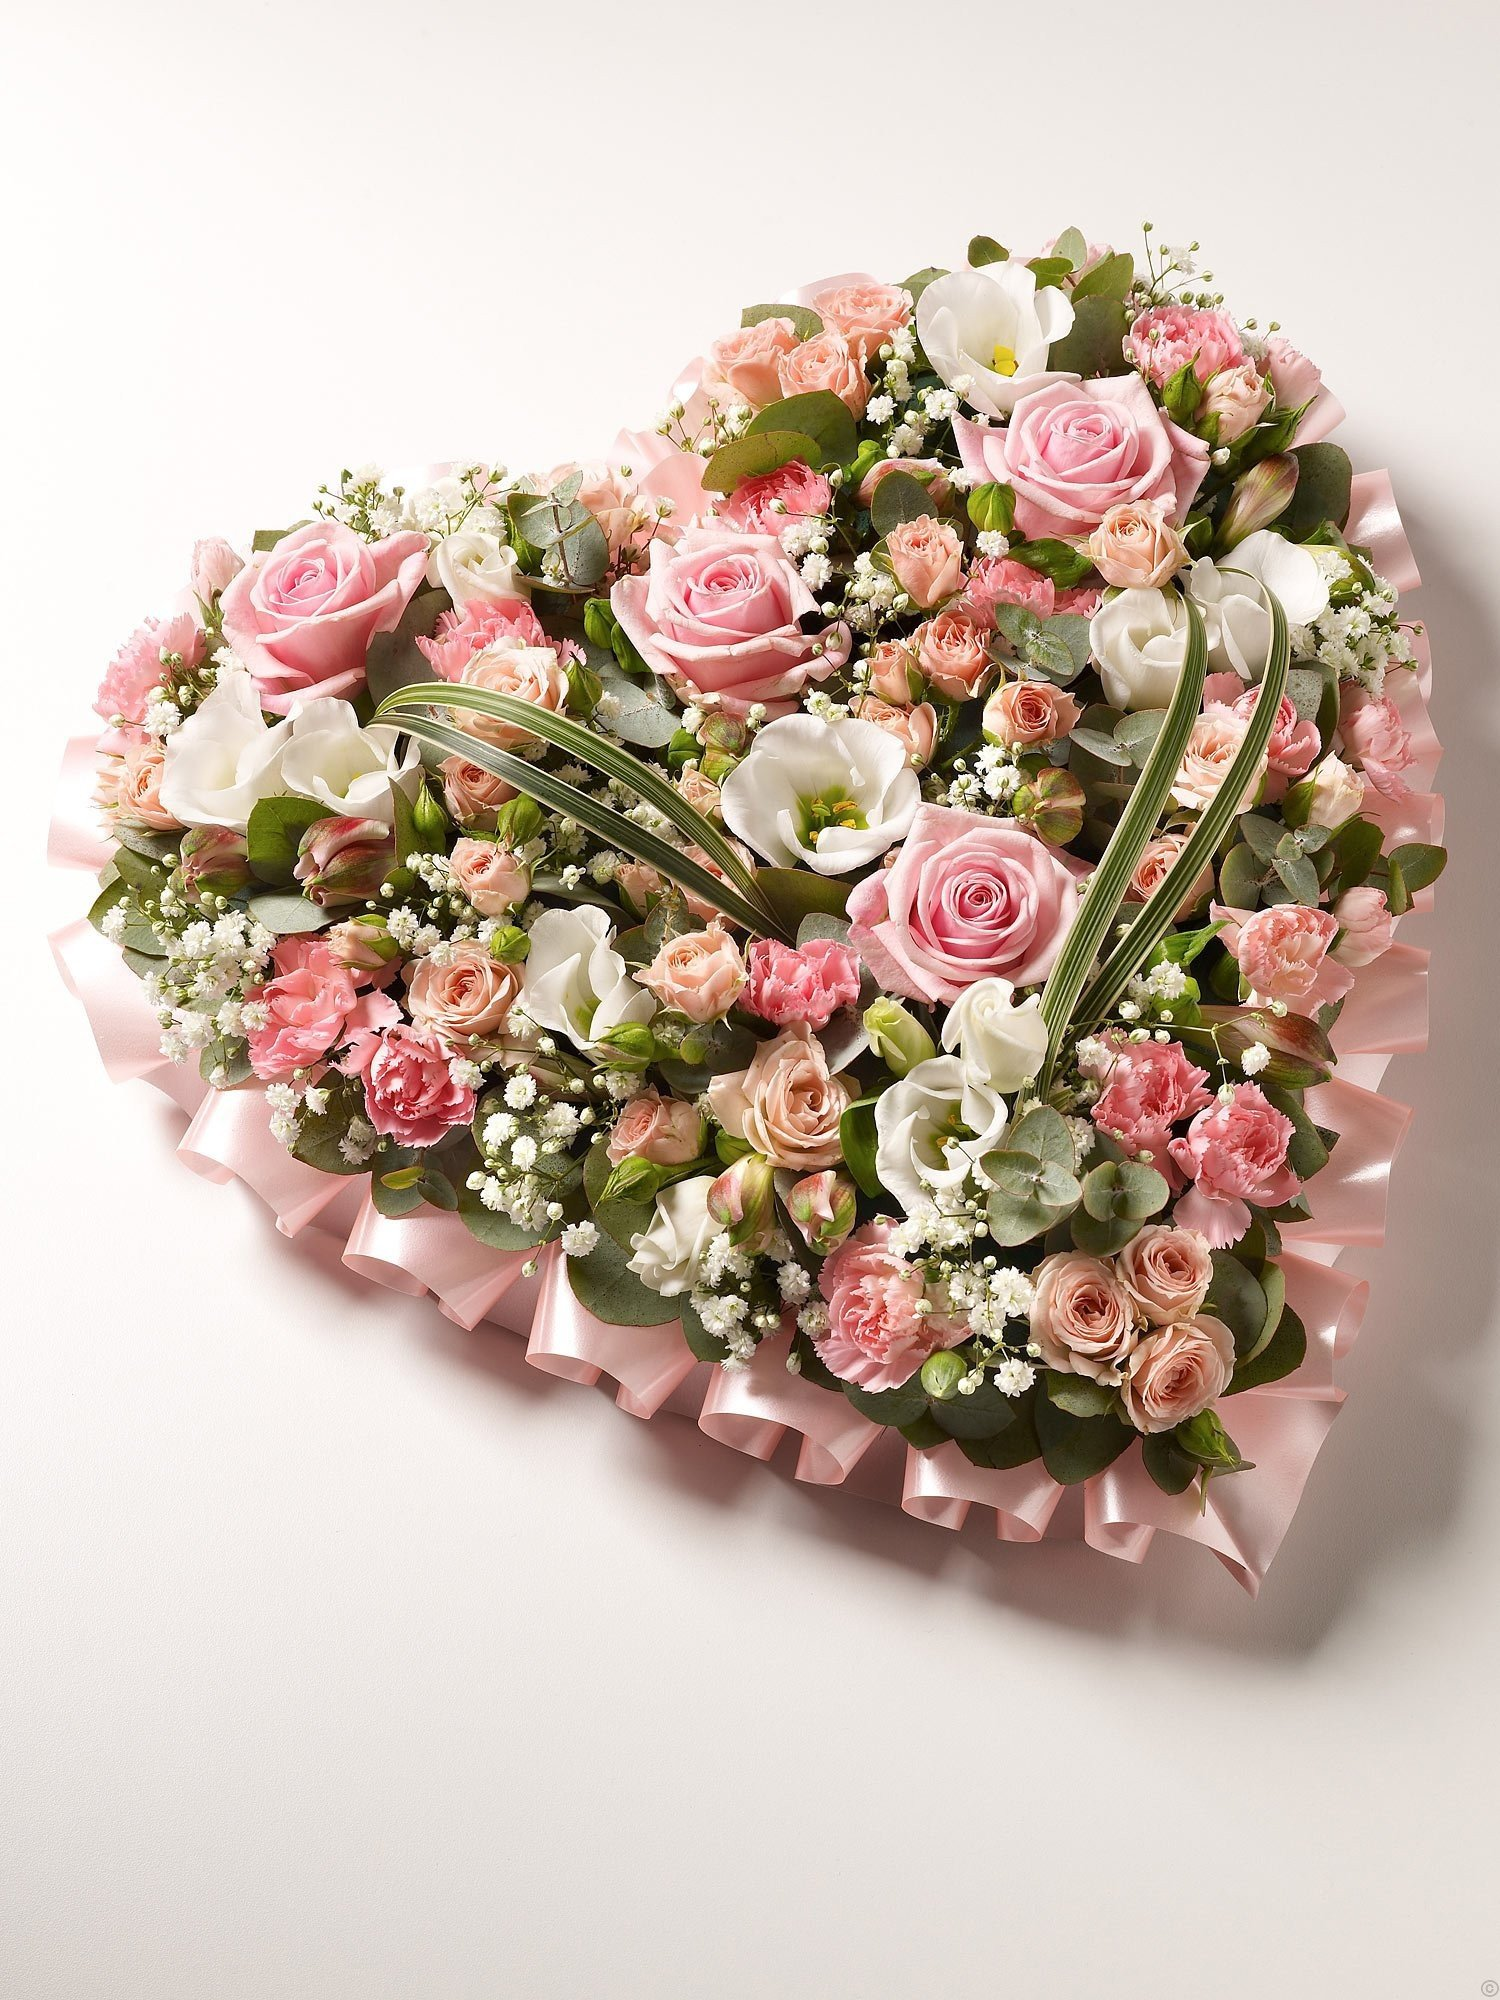 Floral tributes for funerals in taunton and somerset funeral wreath heart izmirmasajfo